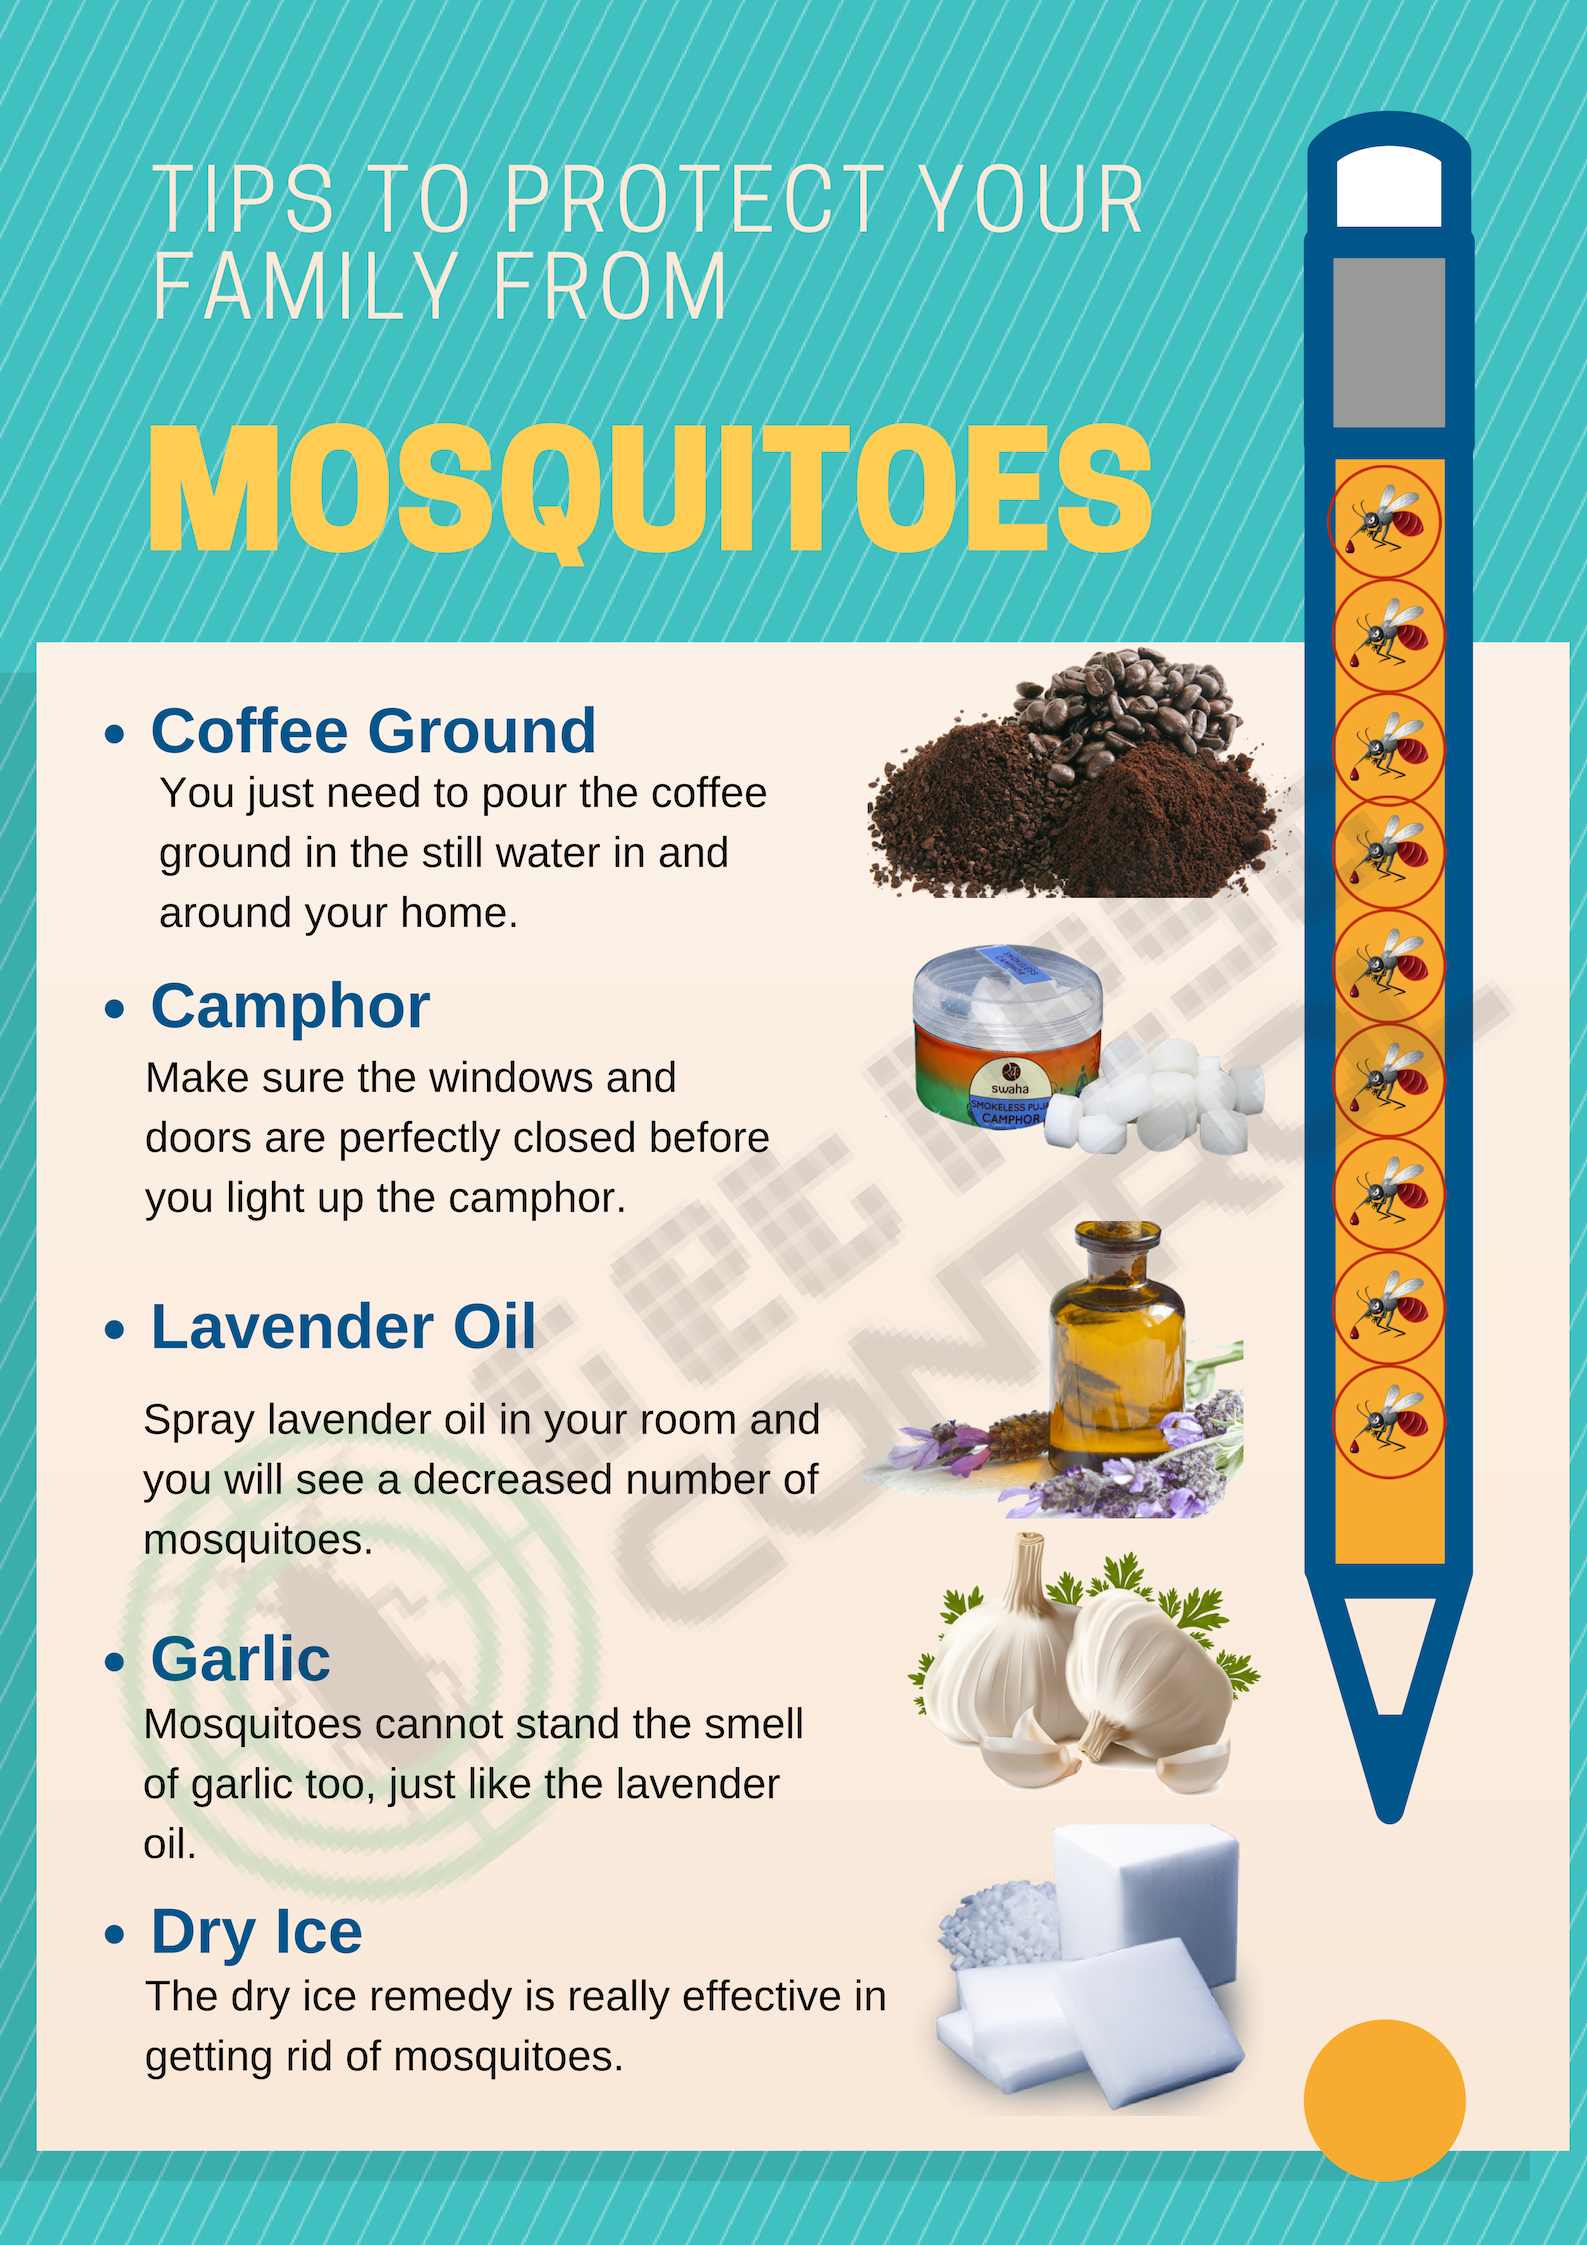 How to Protect Your Family from Mosquitoes? - Get Pest Control